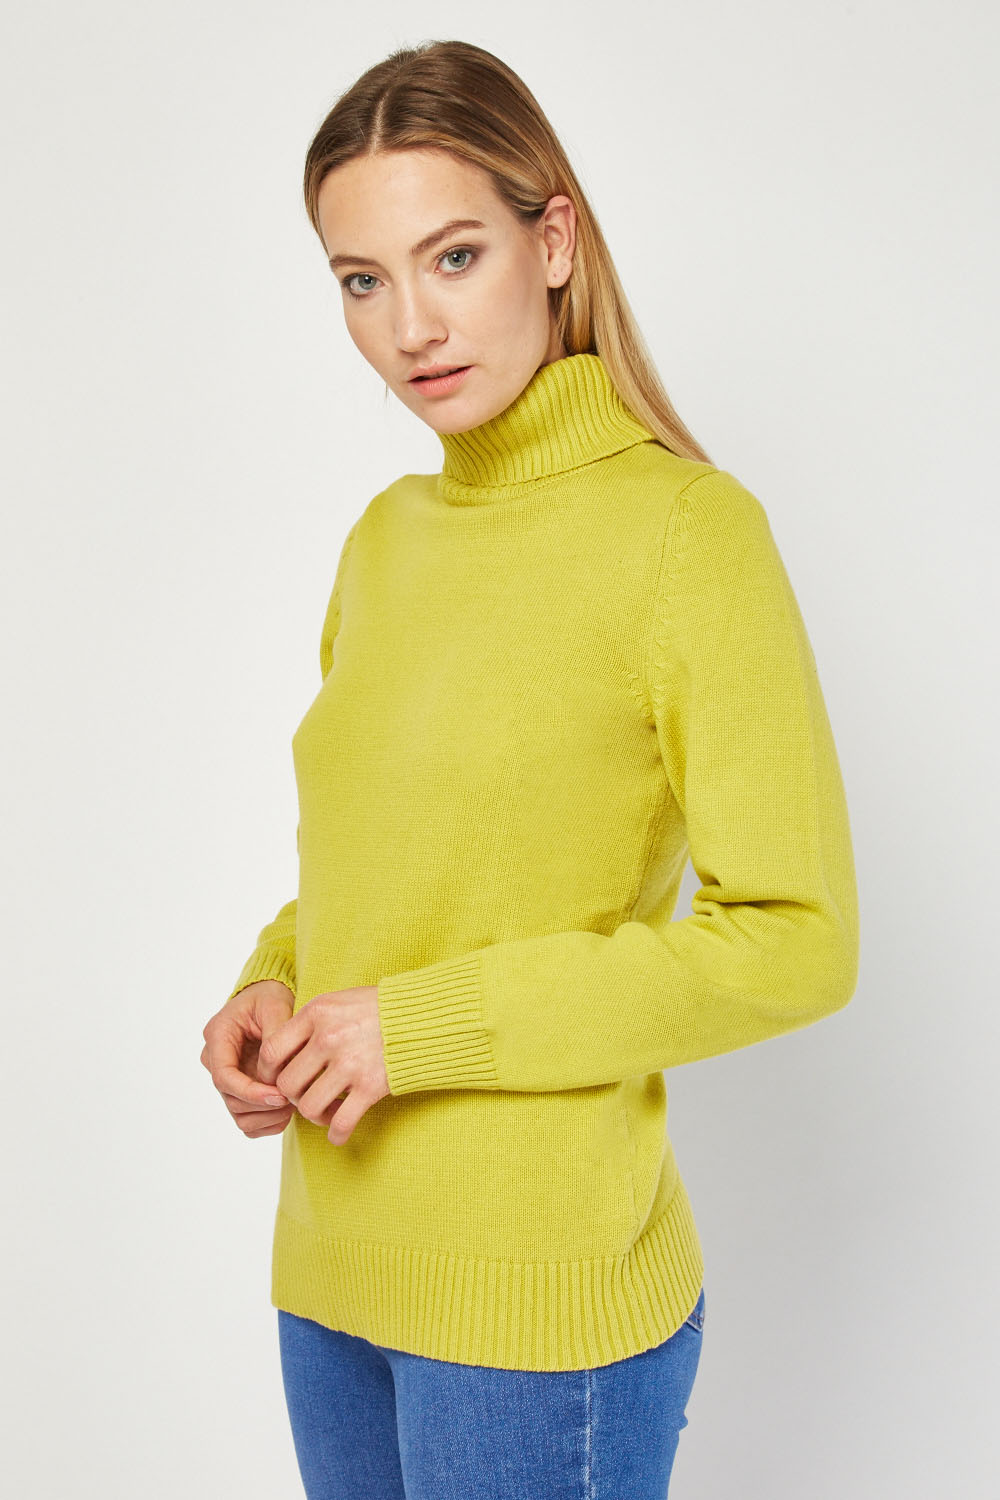 2b4f23d4ebc Roll Neck Chunky Knitted Jumper - Lime or Royal Blue - Just £5